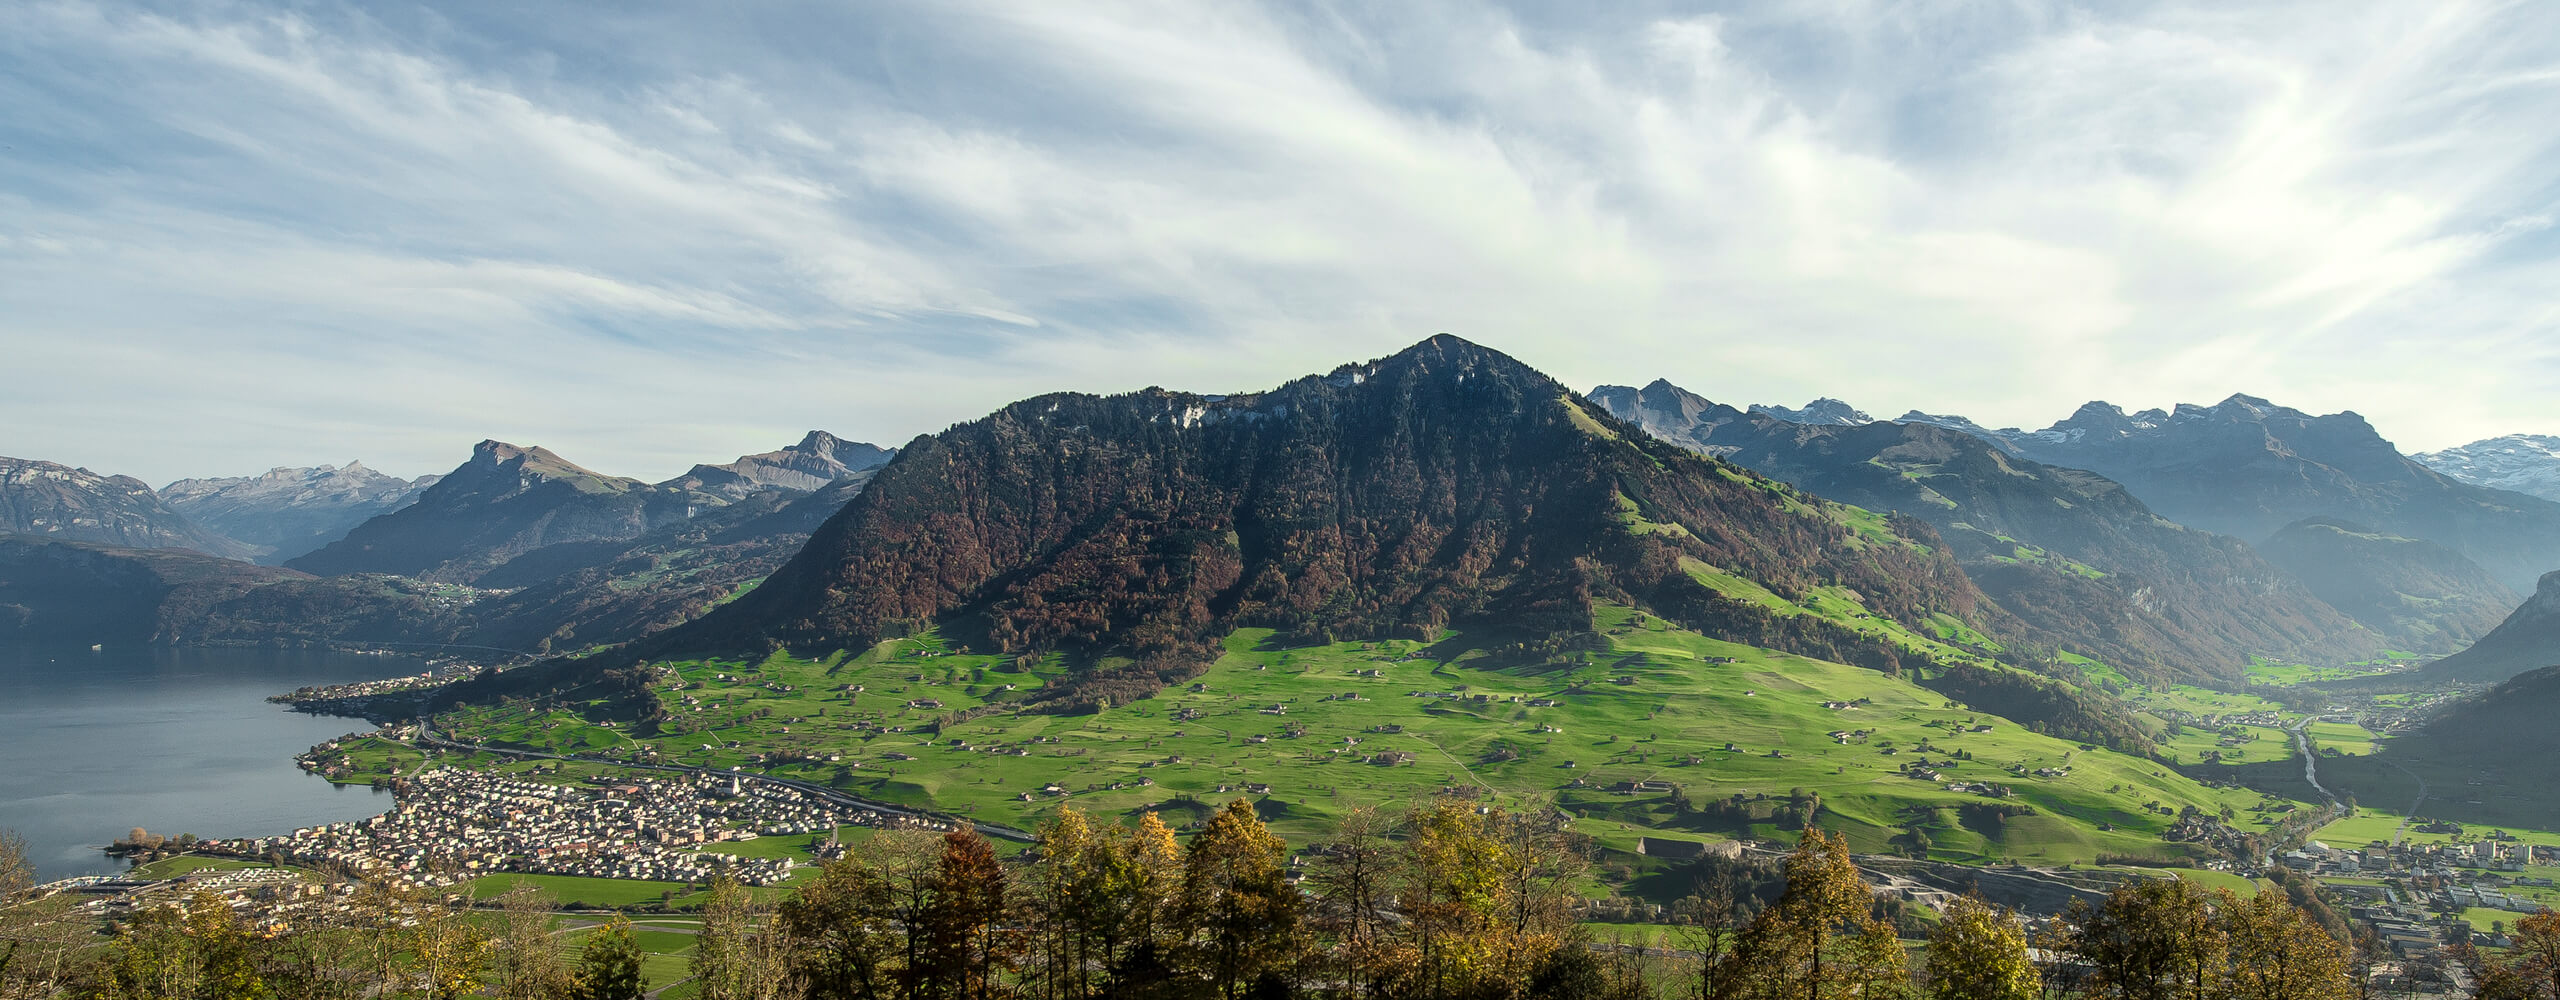 Korporation-Buochs-Header-01